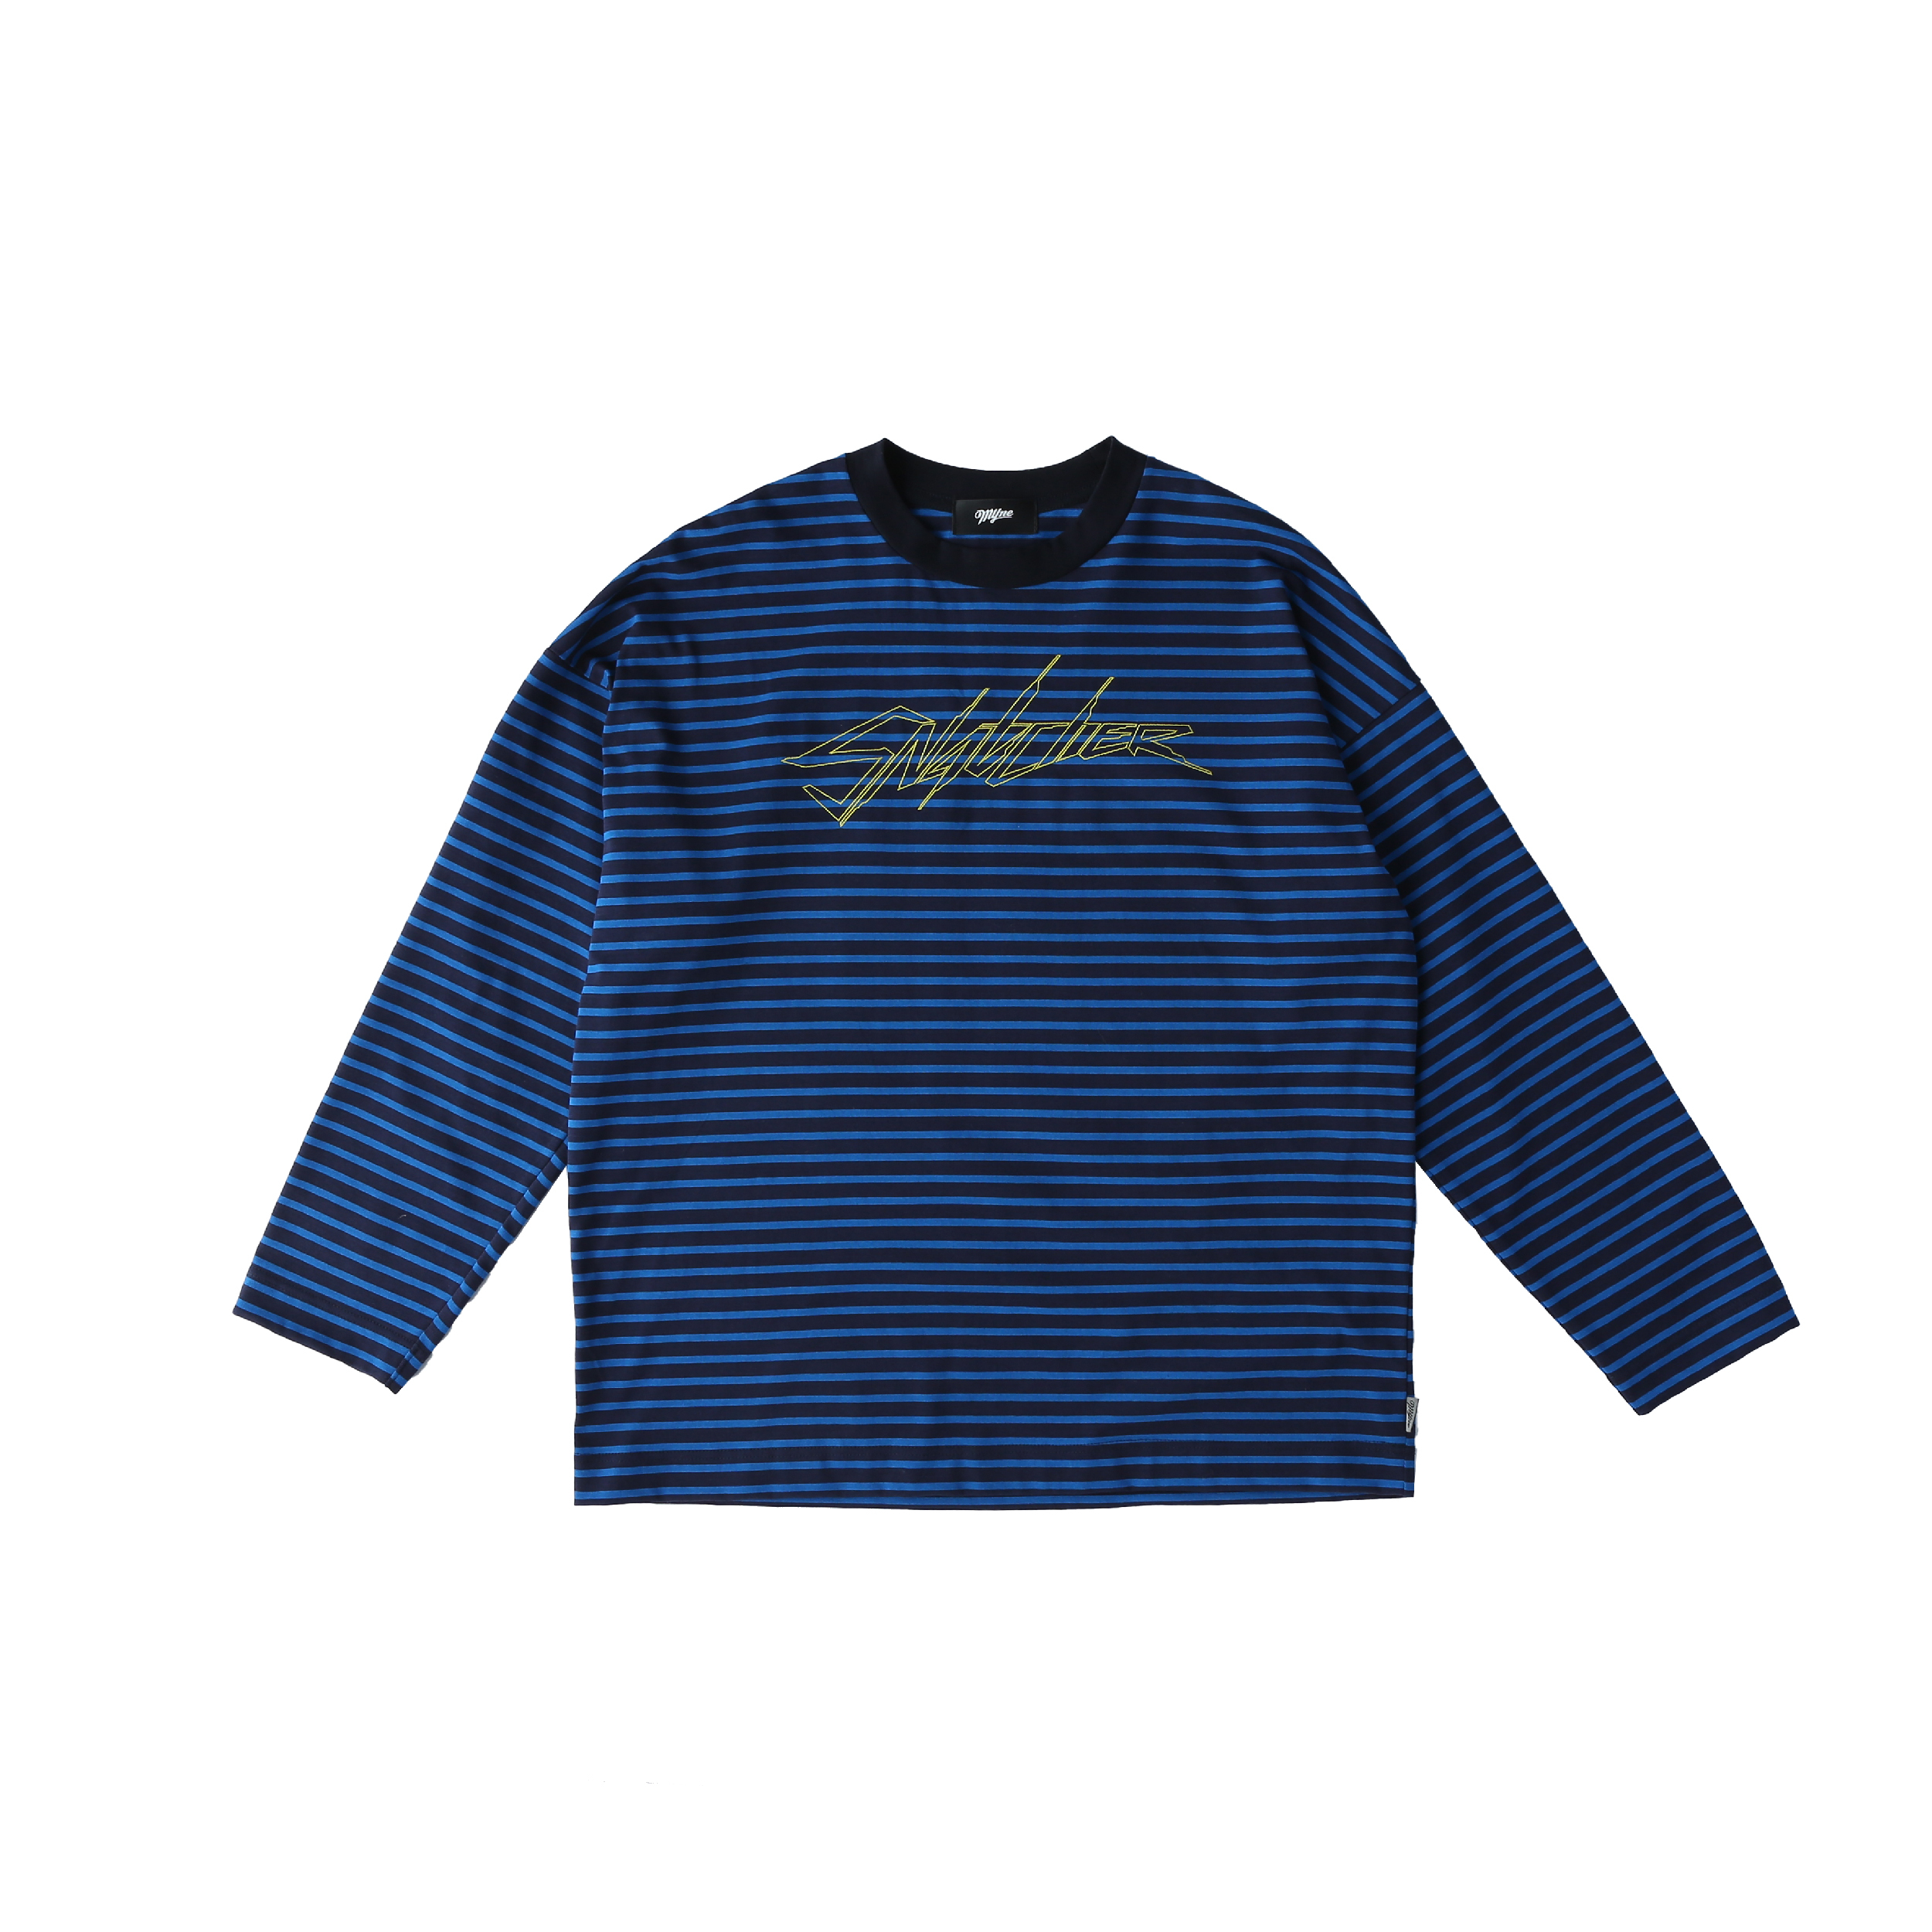 【30%OFF】SNATCHER border T-shirt / BLUE - 画像1